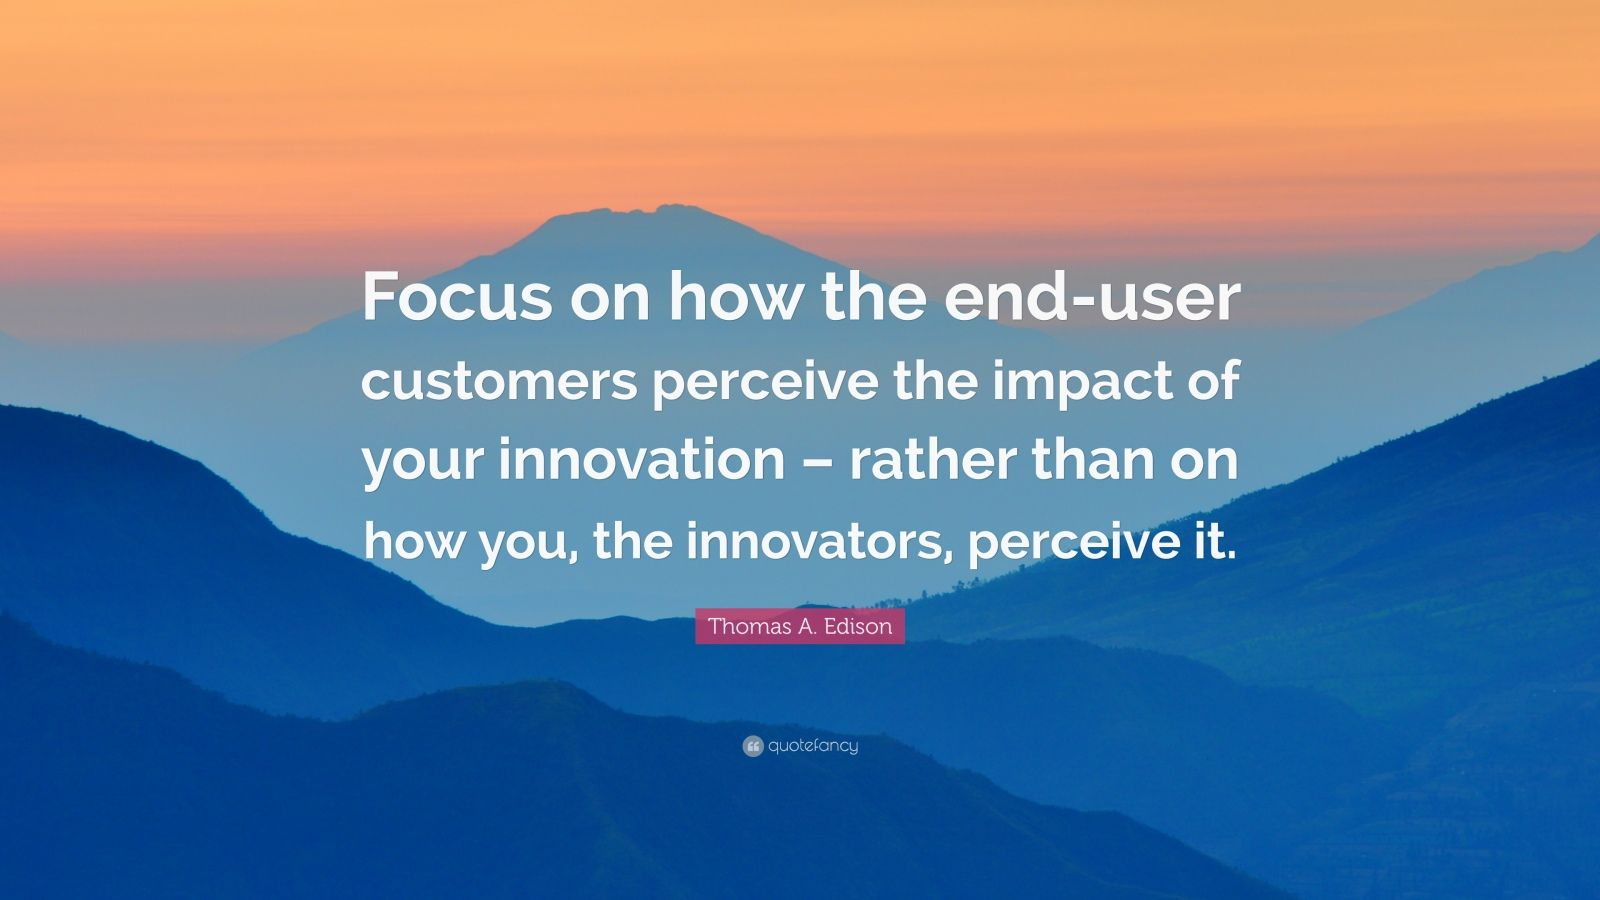 """Thomas A. Edison Quote: """"Focus on how the end-user customers perceive the impact of your innovation – rather than on how you, the innovators, perceive it."""""""